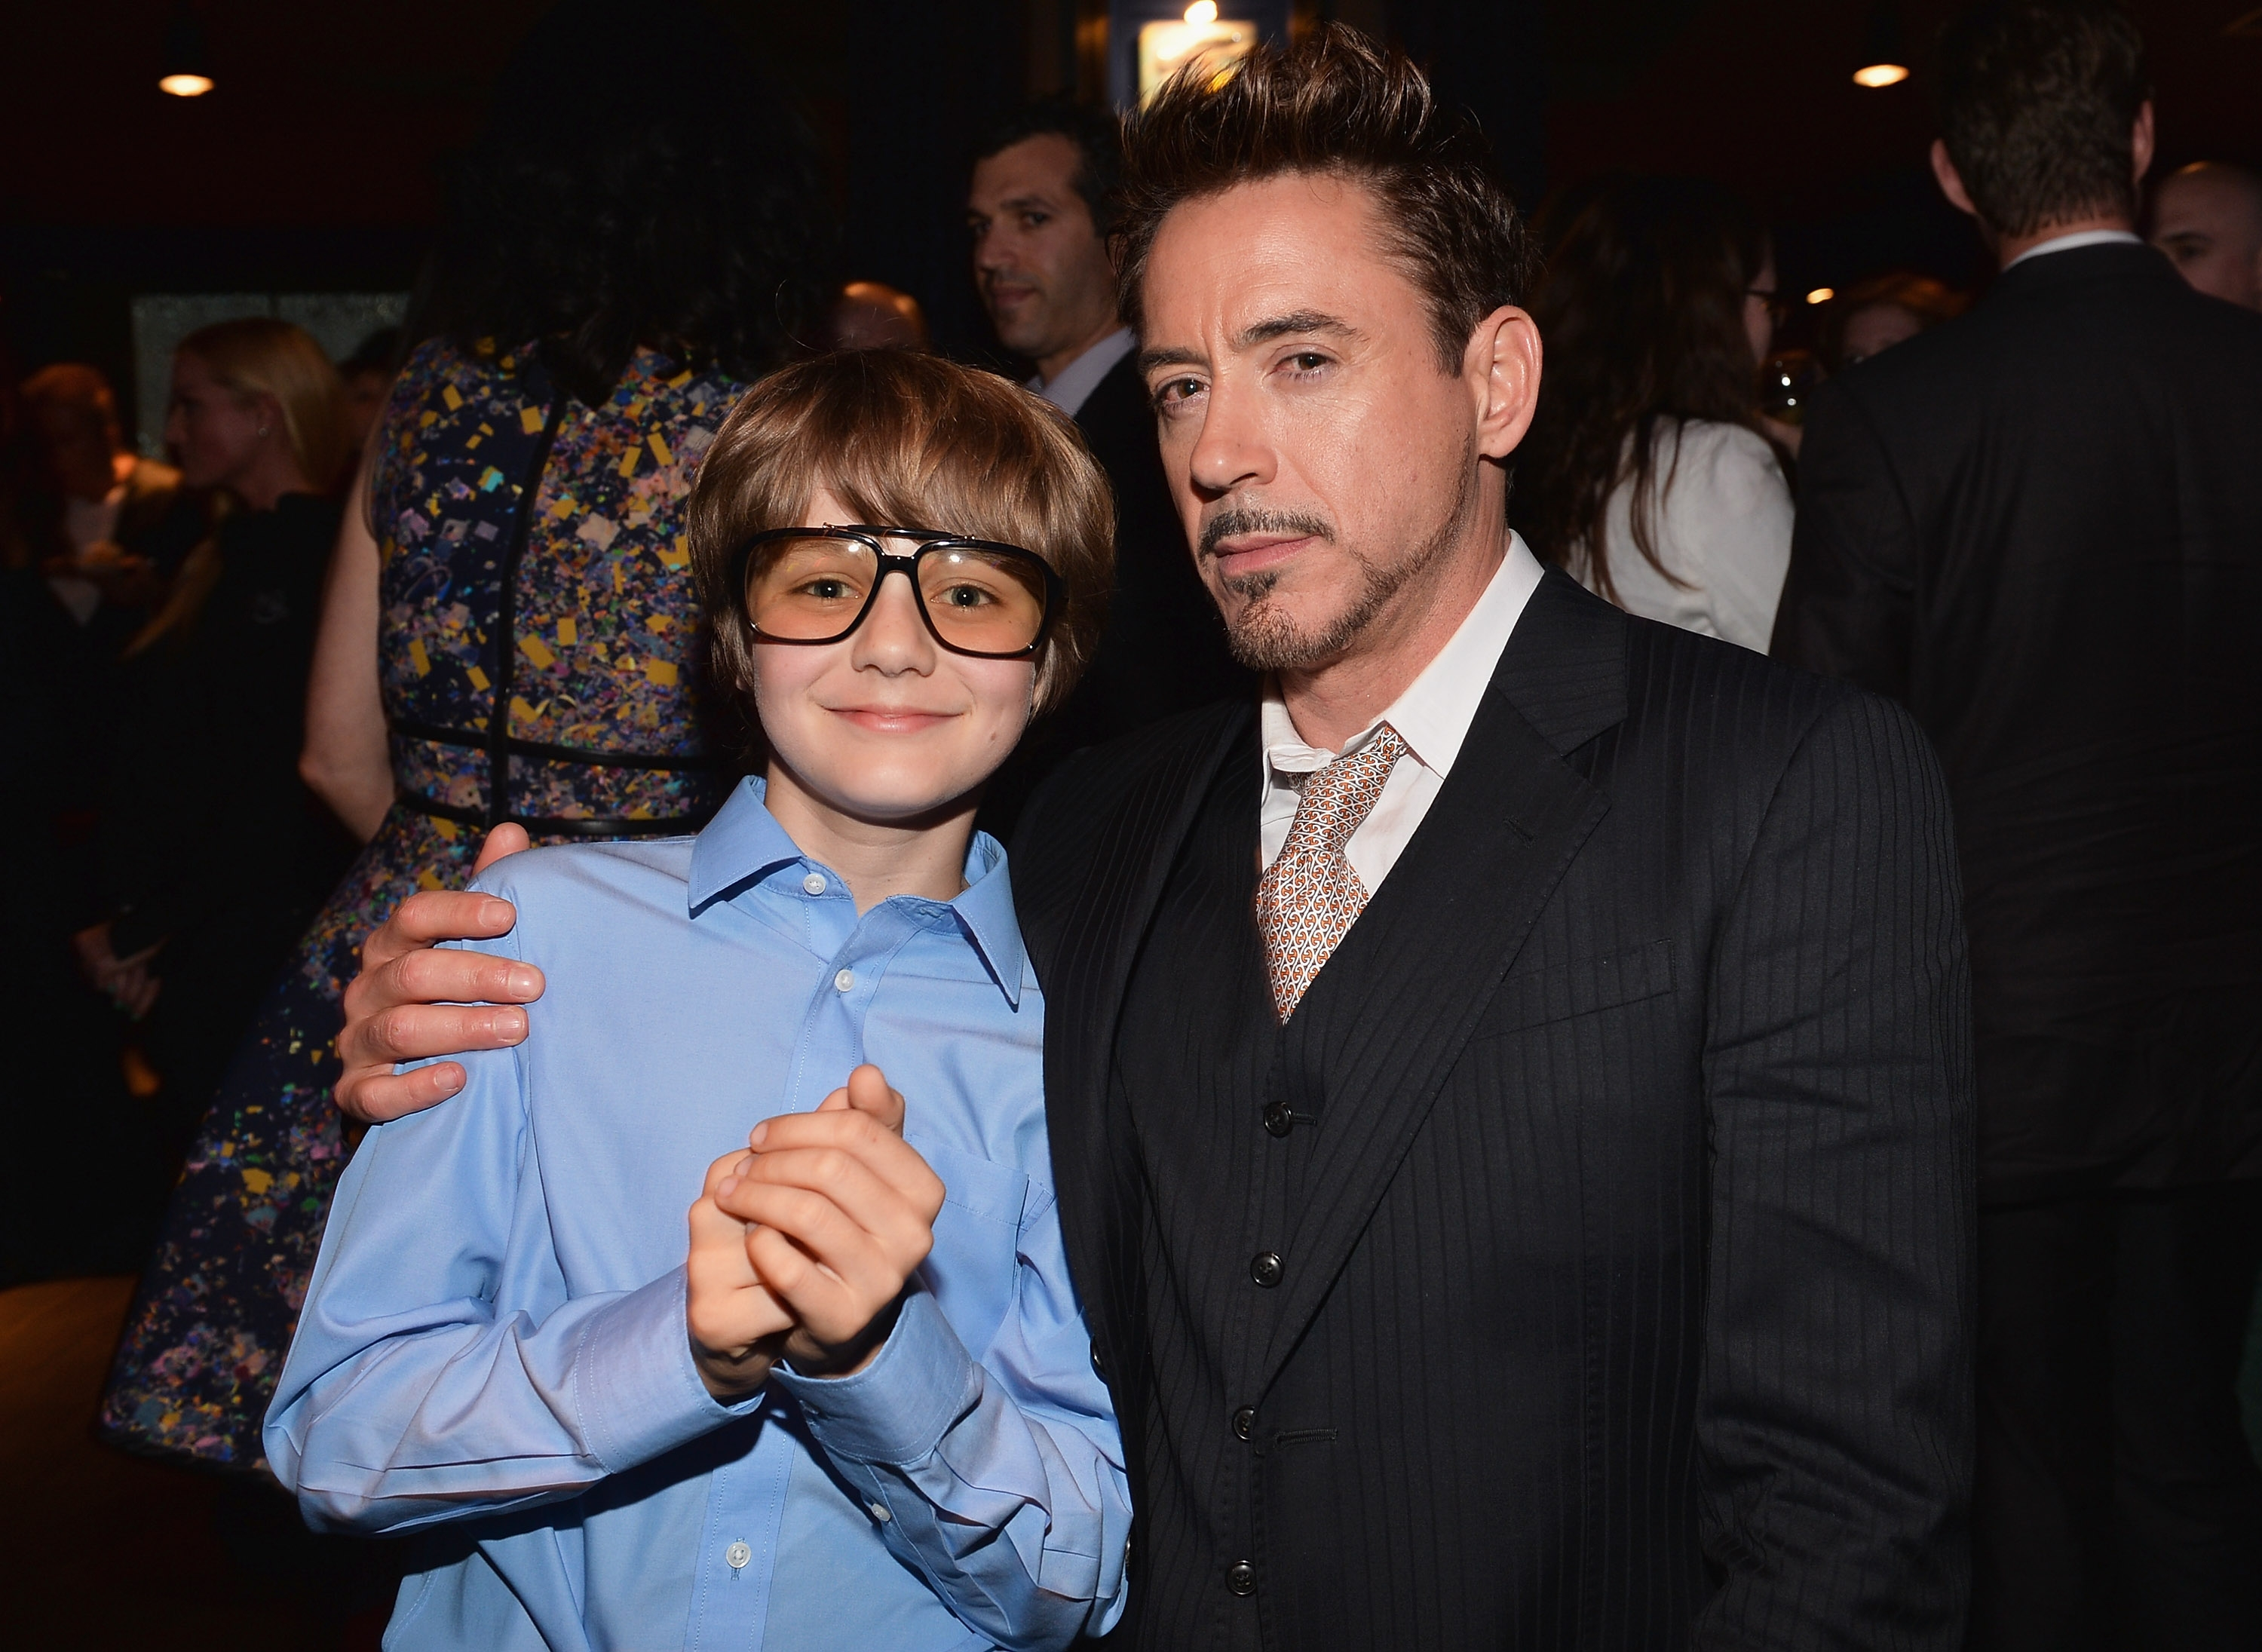 Iron Man 3: Robert Downey Jr 's 11-Year-Old Co-Star Calls